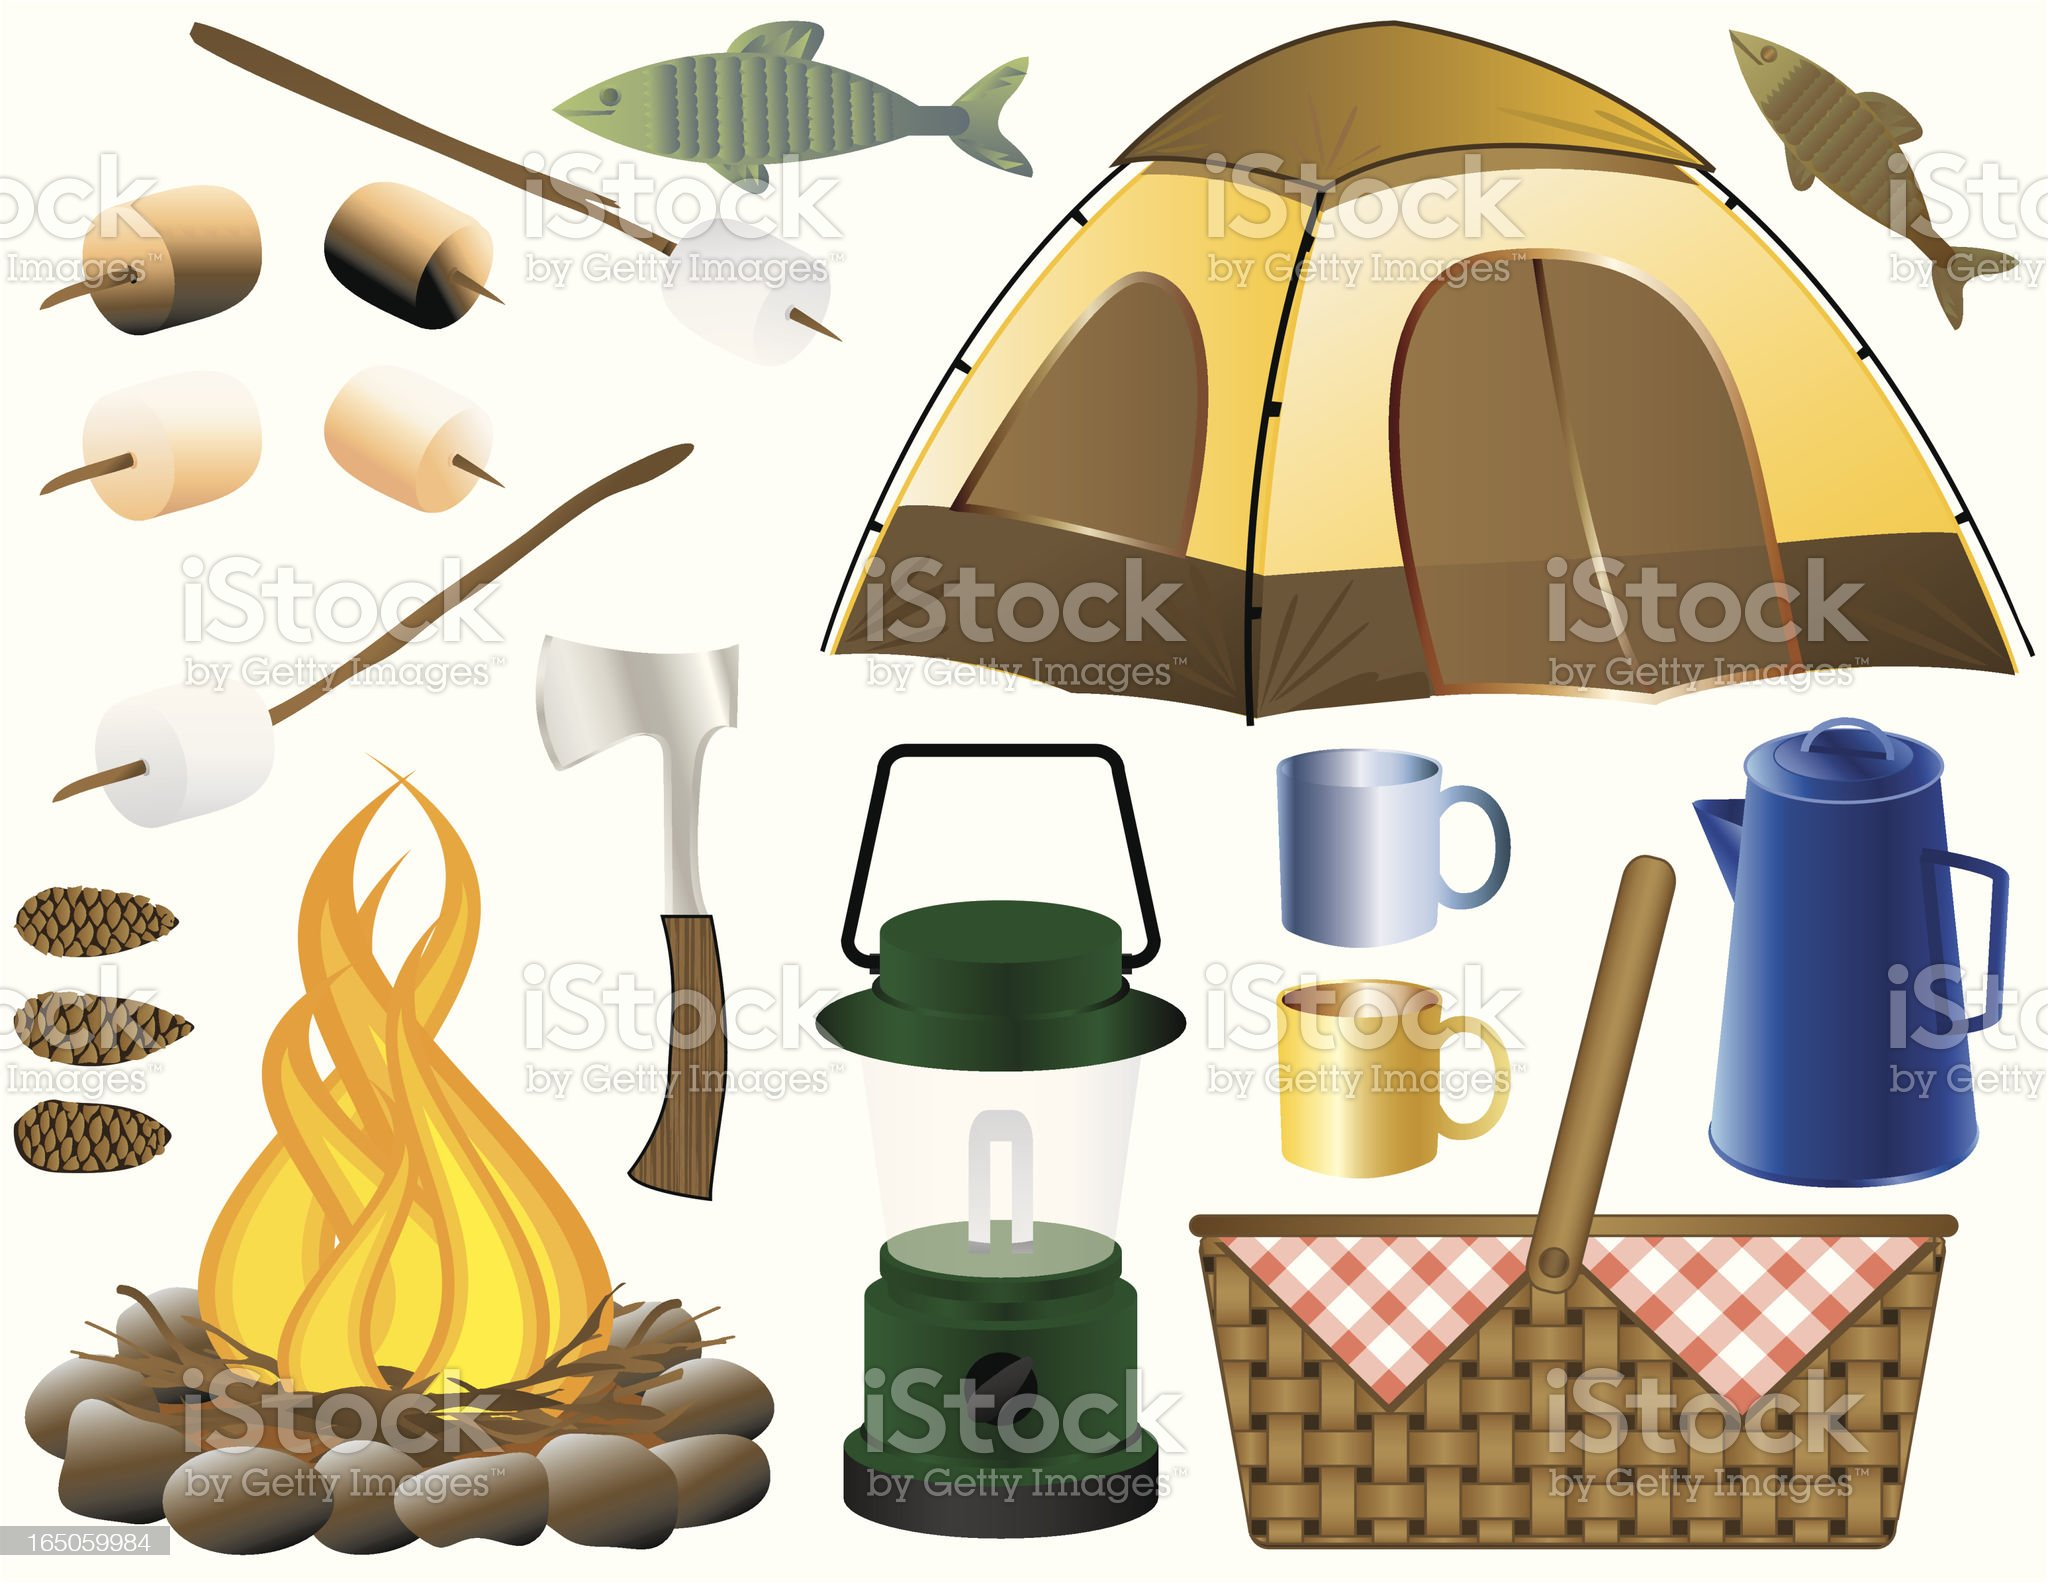 Camping Elements royalty-free stock vector art